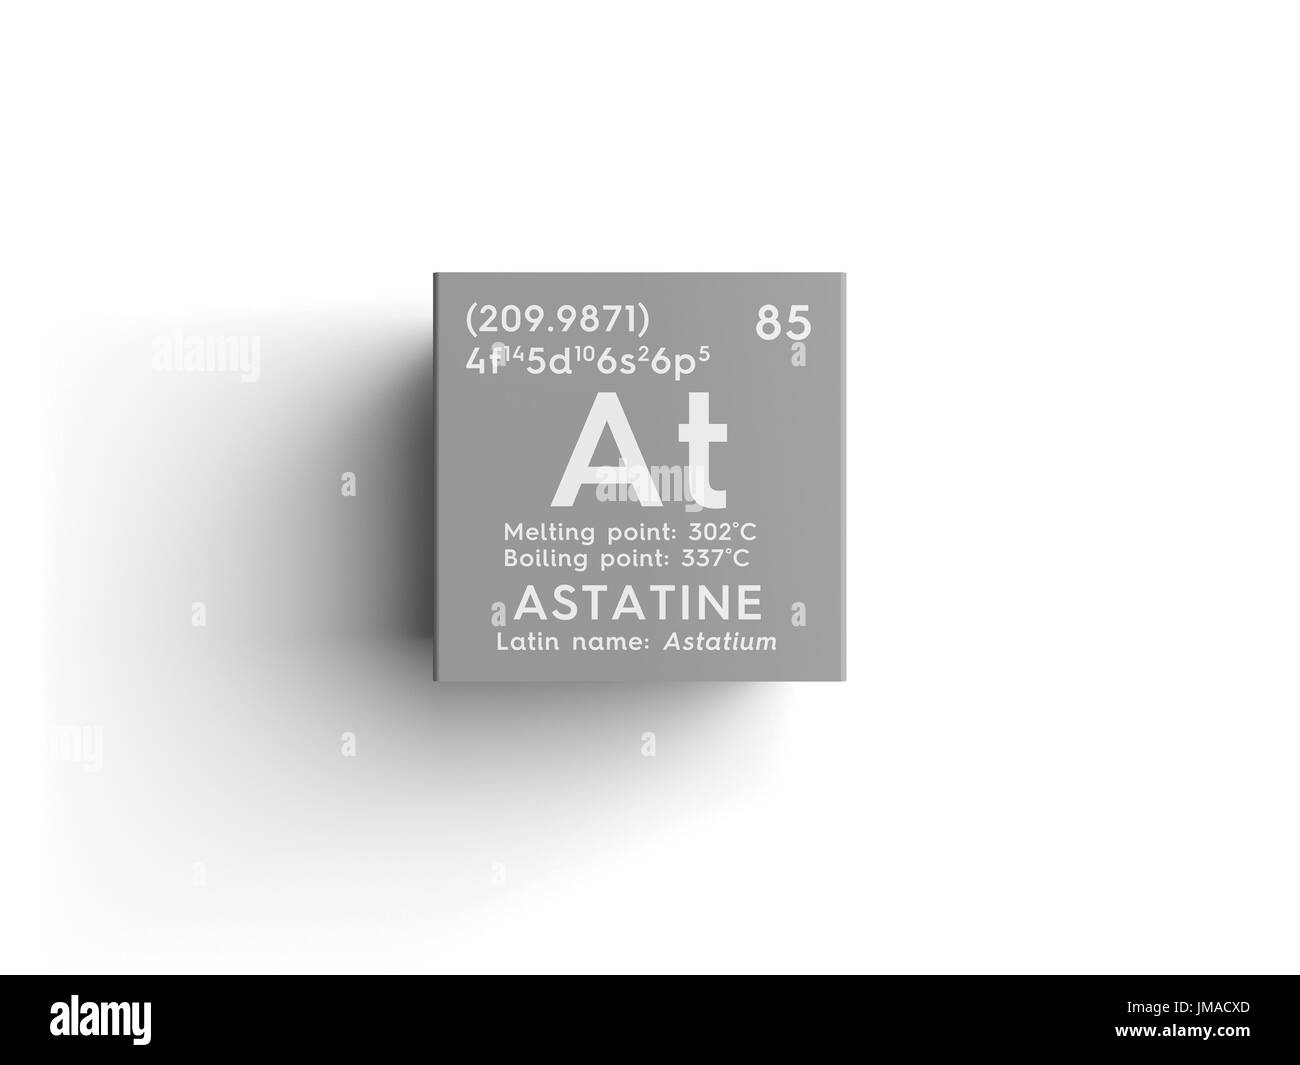 Astatine astatium halogens chemical element of mendeleevs stock astatine astatium halogens chemical element of mendeleevs periodic table astatine in square cube creative concept urtaz Gallery